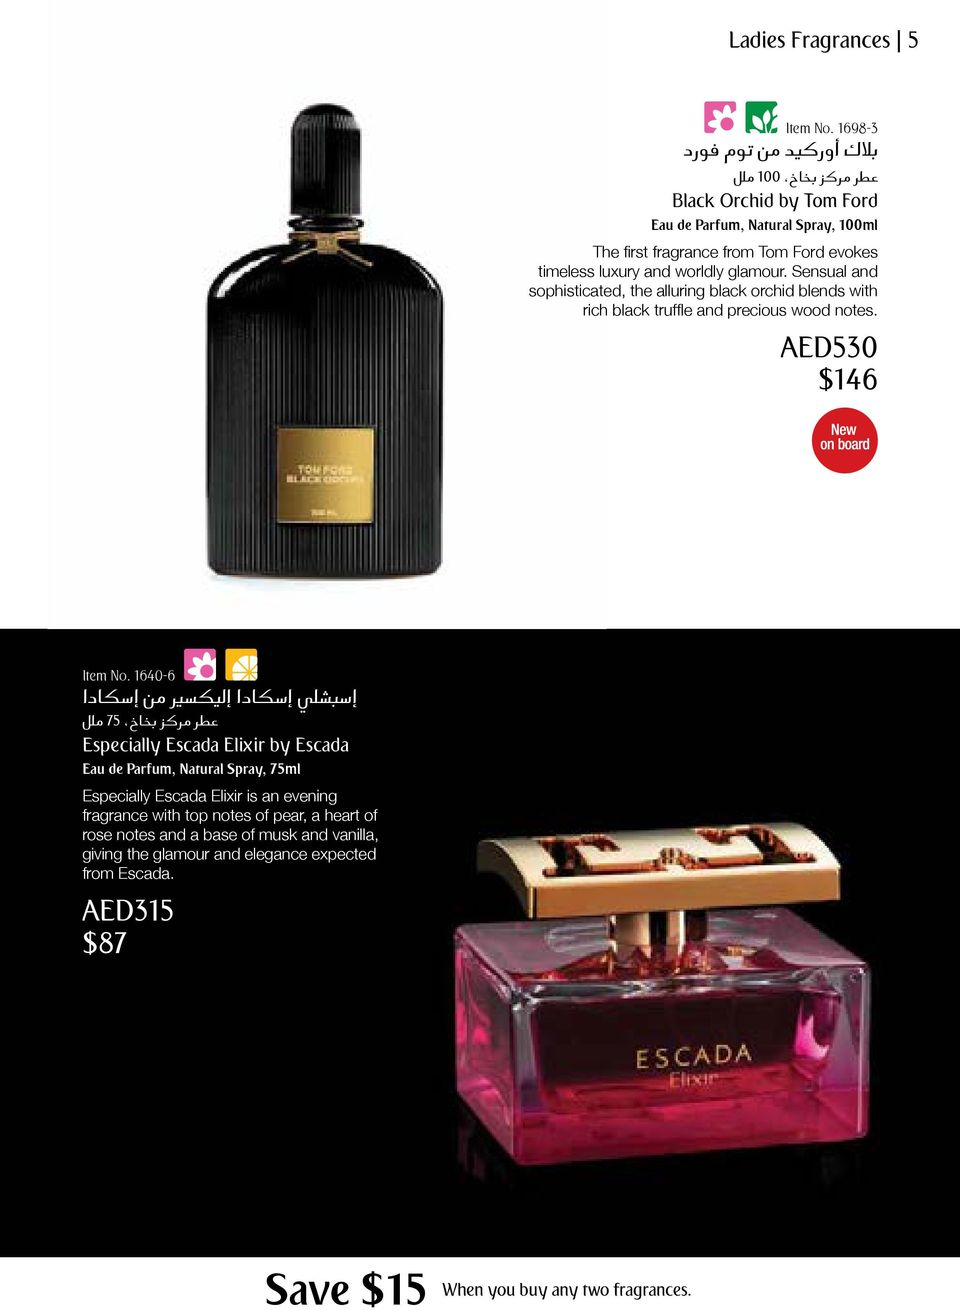 a996ccb3c Sensual and sophisticated, the alluring black orchid blends with rich black  truffle